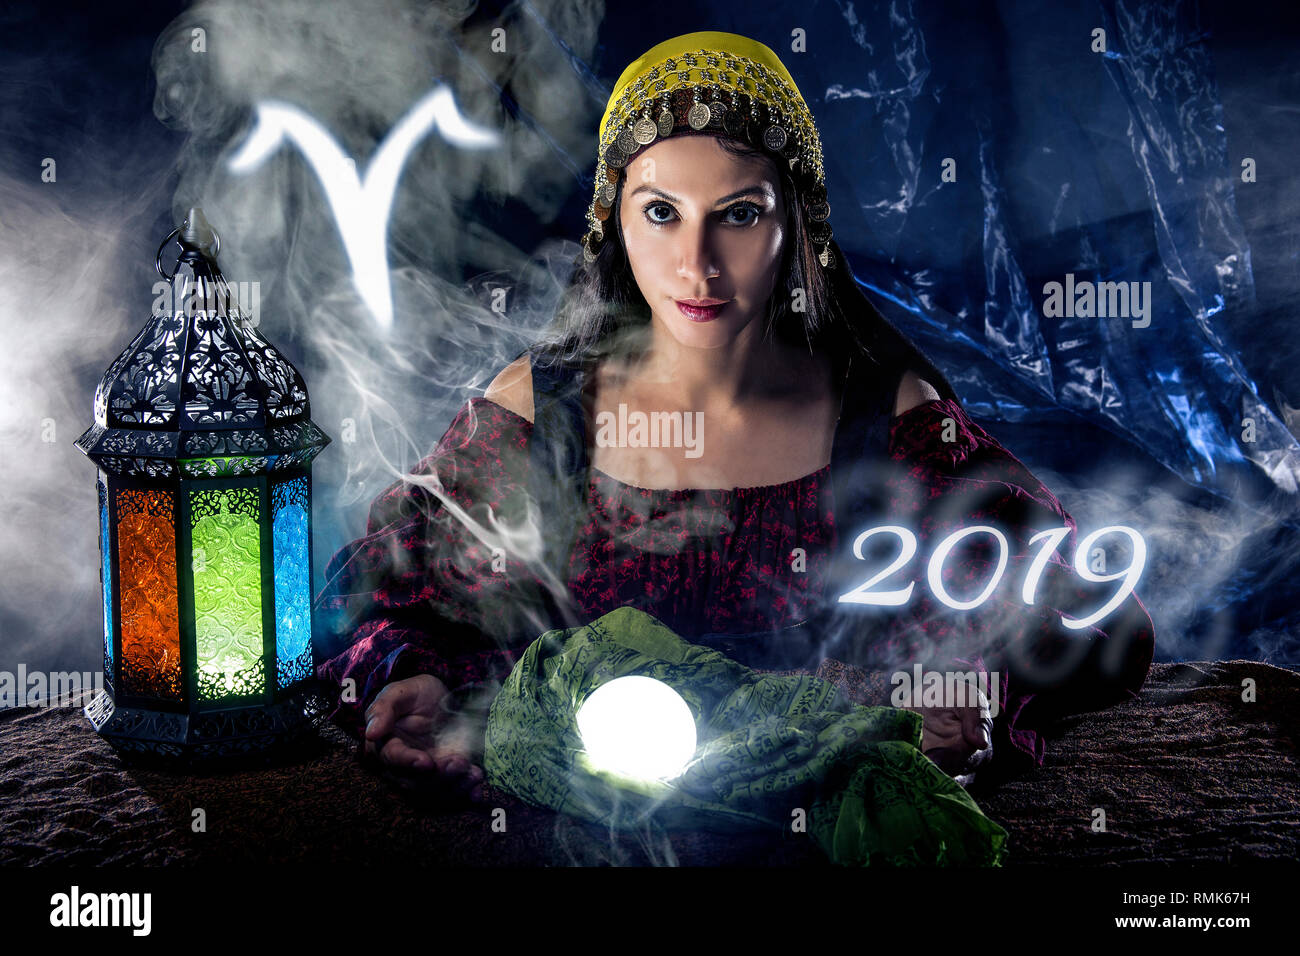 Psychic or fortune teller with crystal ball and horoscope zodiac sign of Aries - Stock Image